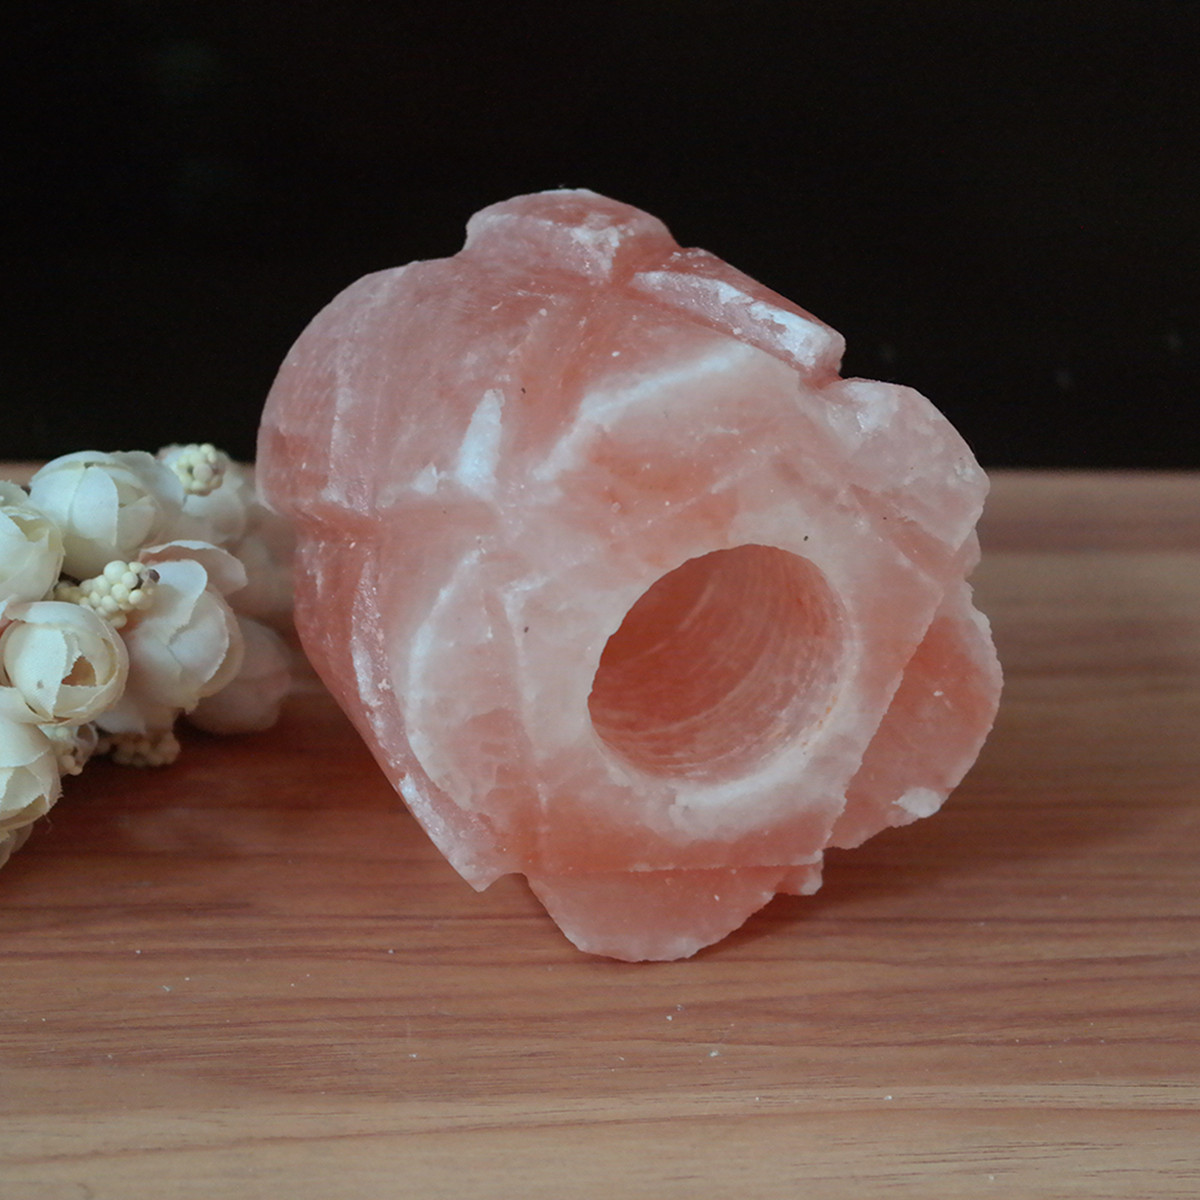 Cylindrical Flower Shape Himalayan Natural Crystal Rock Salt Lamp Candle Holder Home Decor